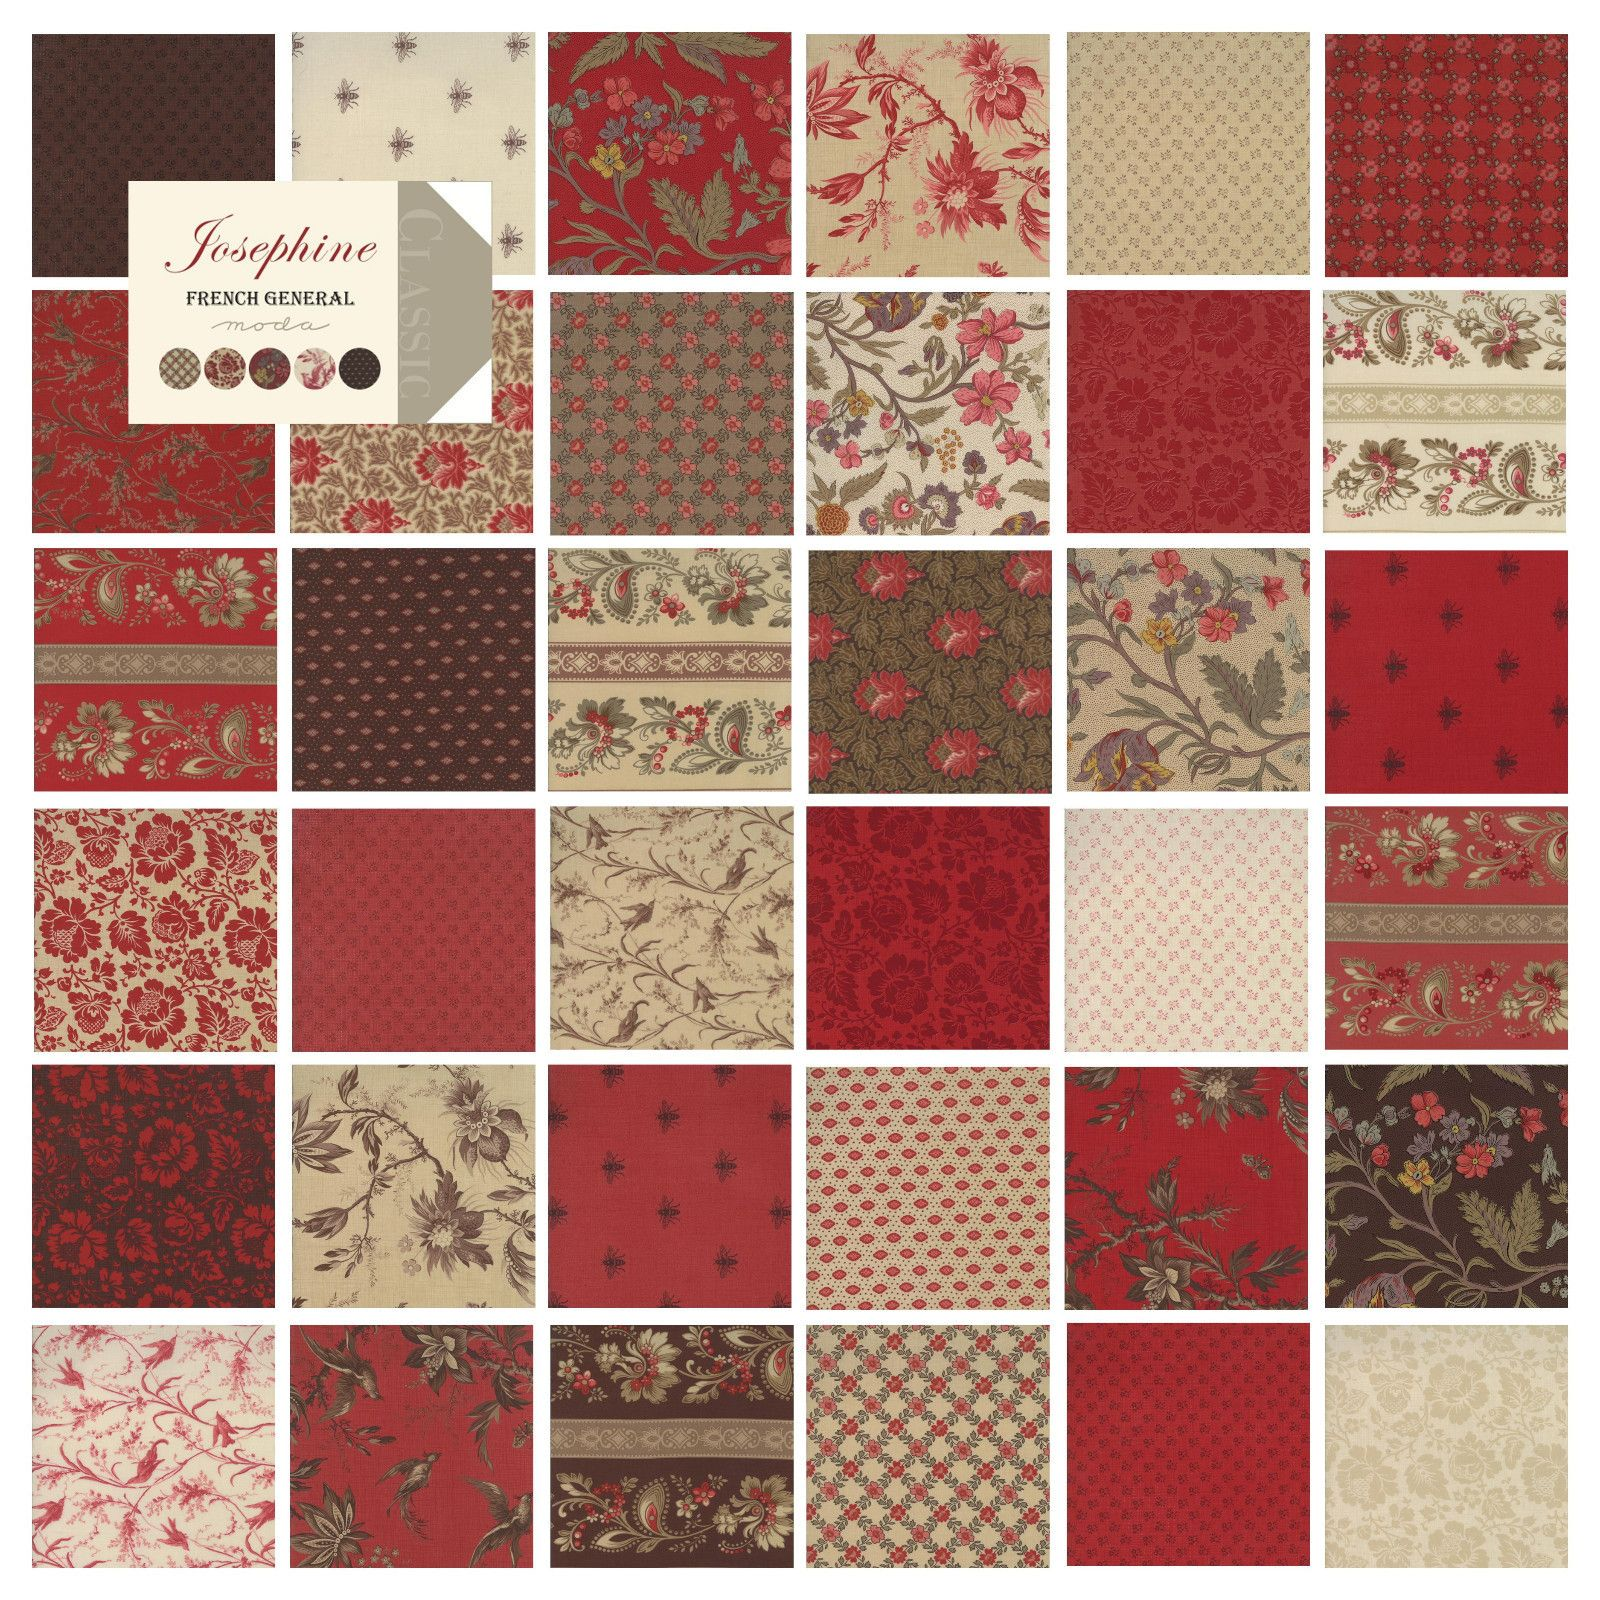 Josephine French General Moda Fabric Quilt Charm Pack 42 5